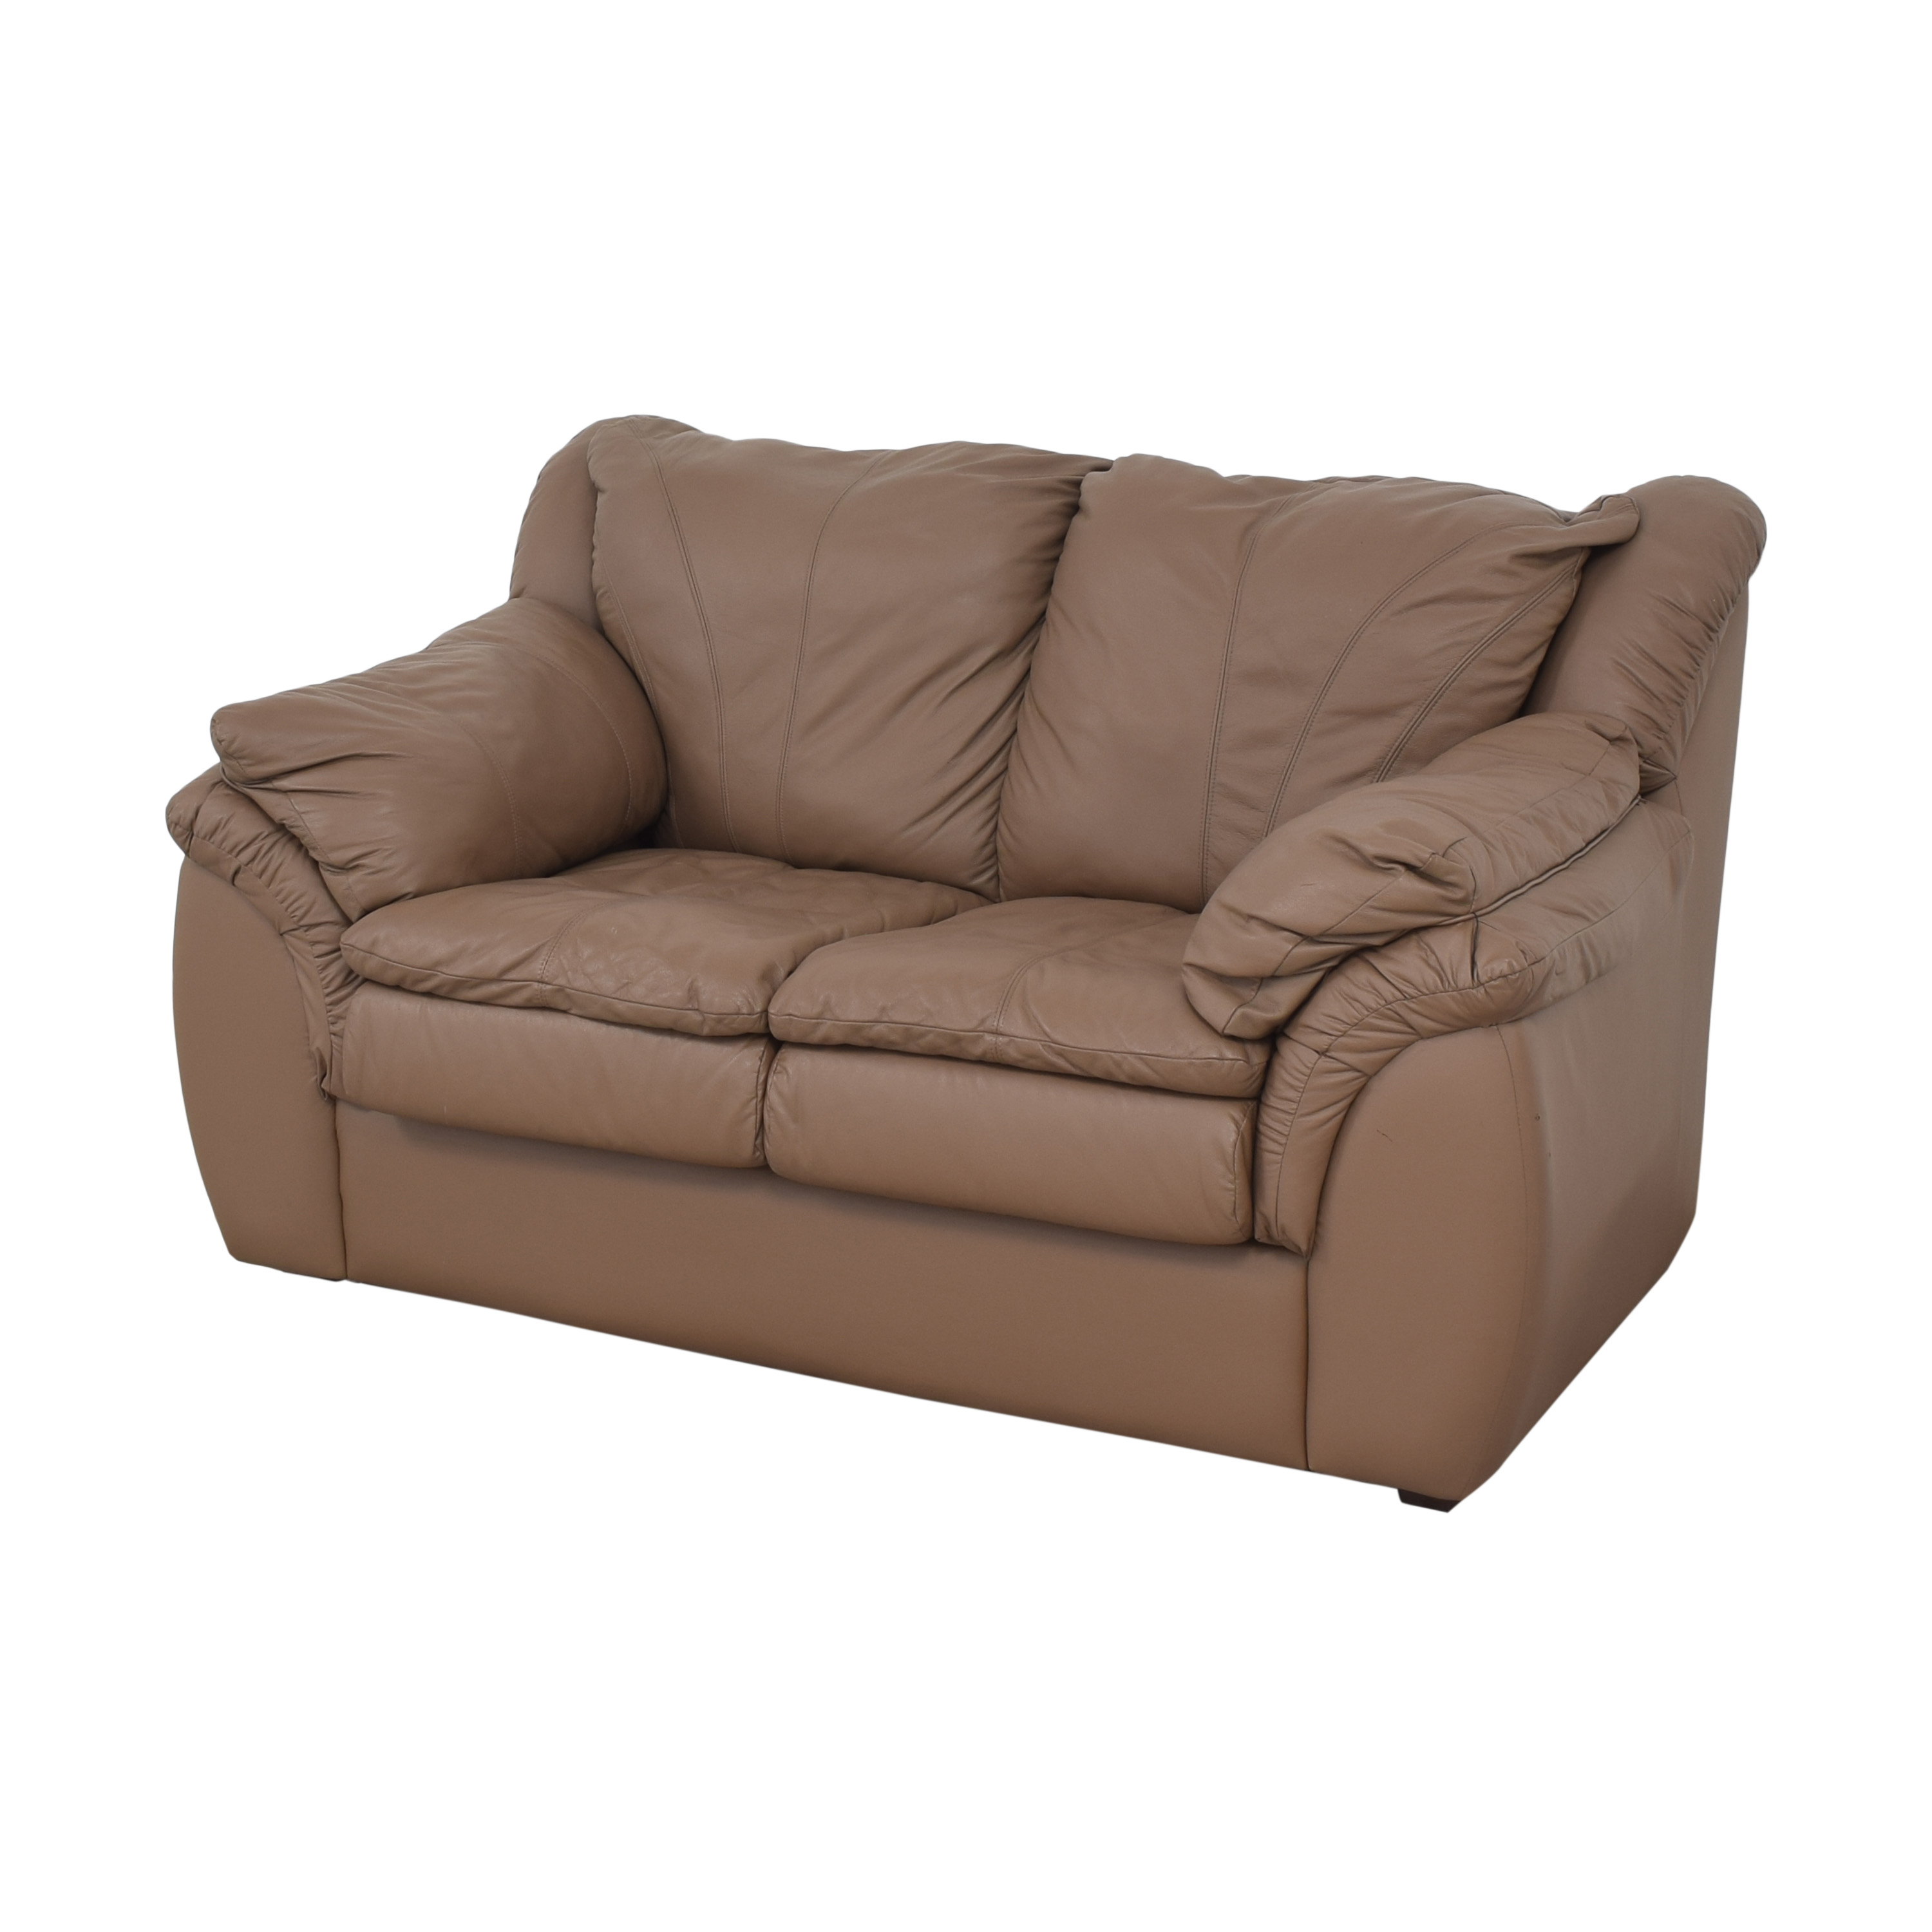 68 Off Plush Loveseat With Arm Cushions Sofas